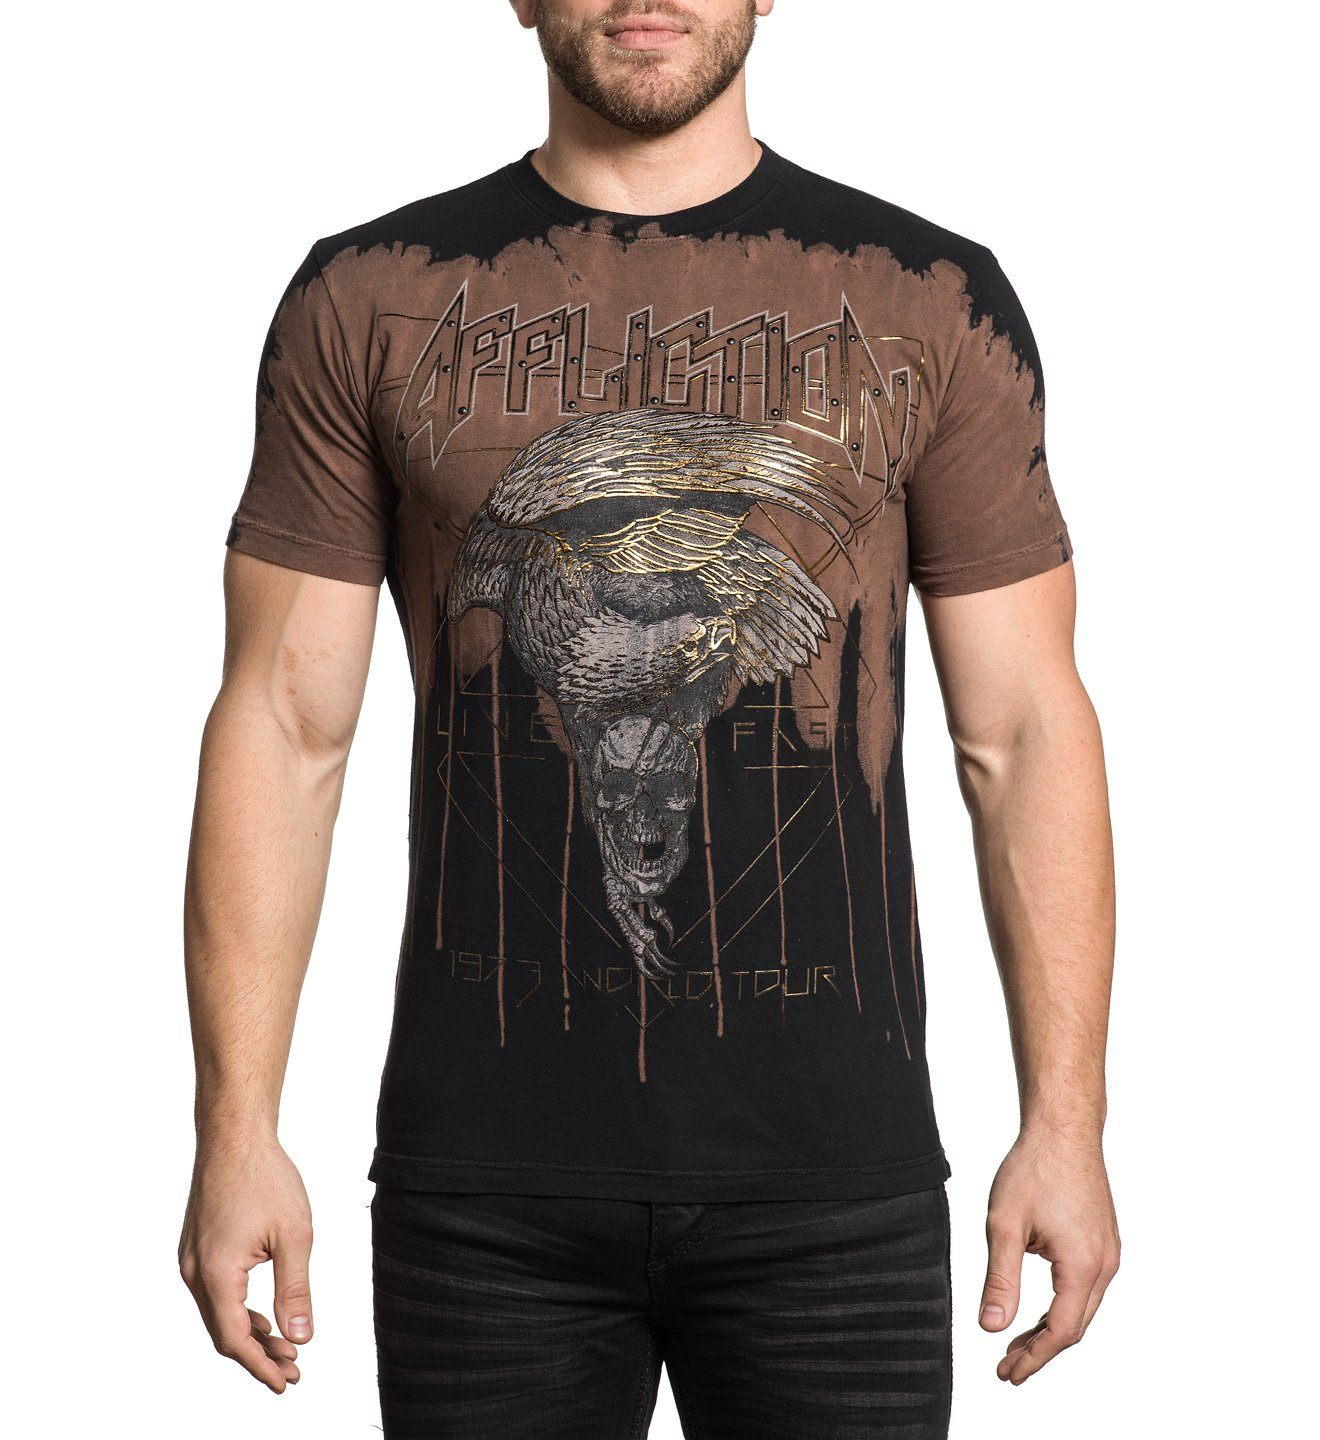 Eagle Rock - Mens Short Sleeve Tees - Affliction Clothing